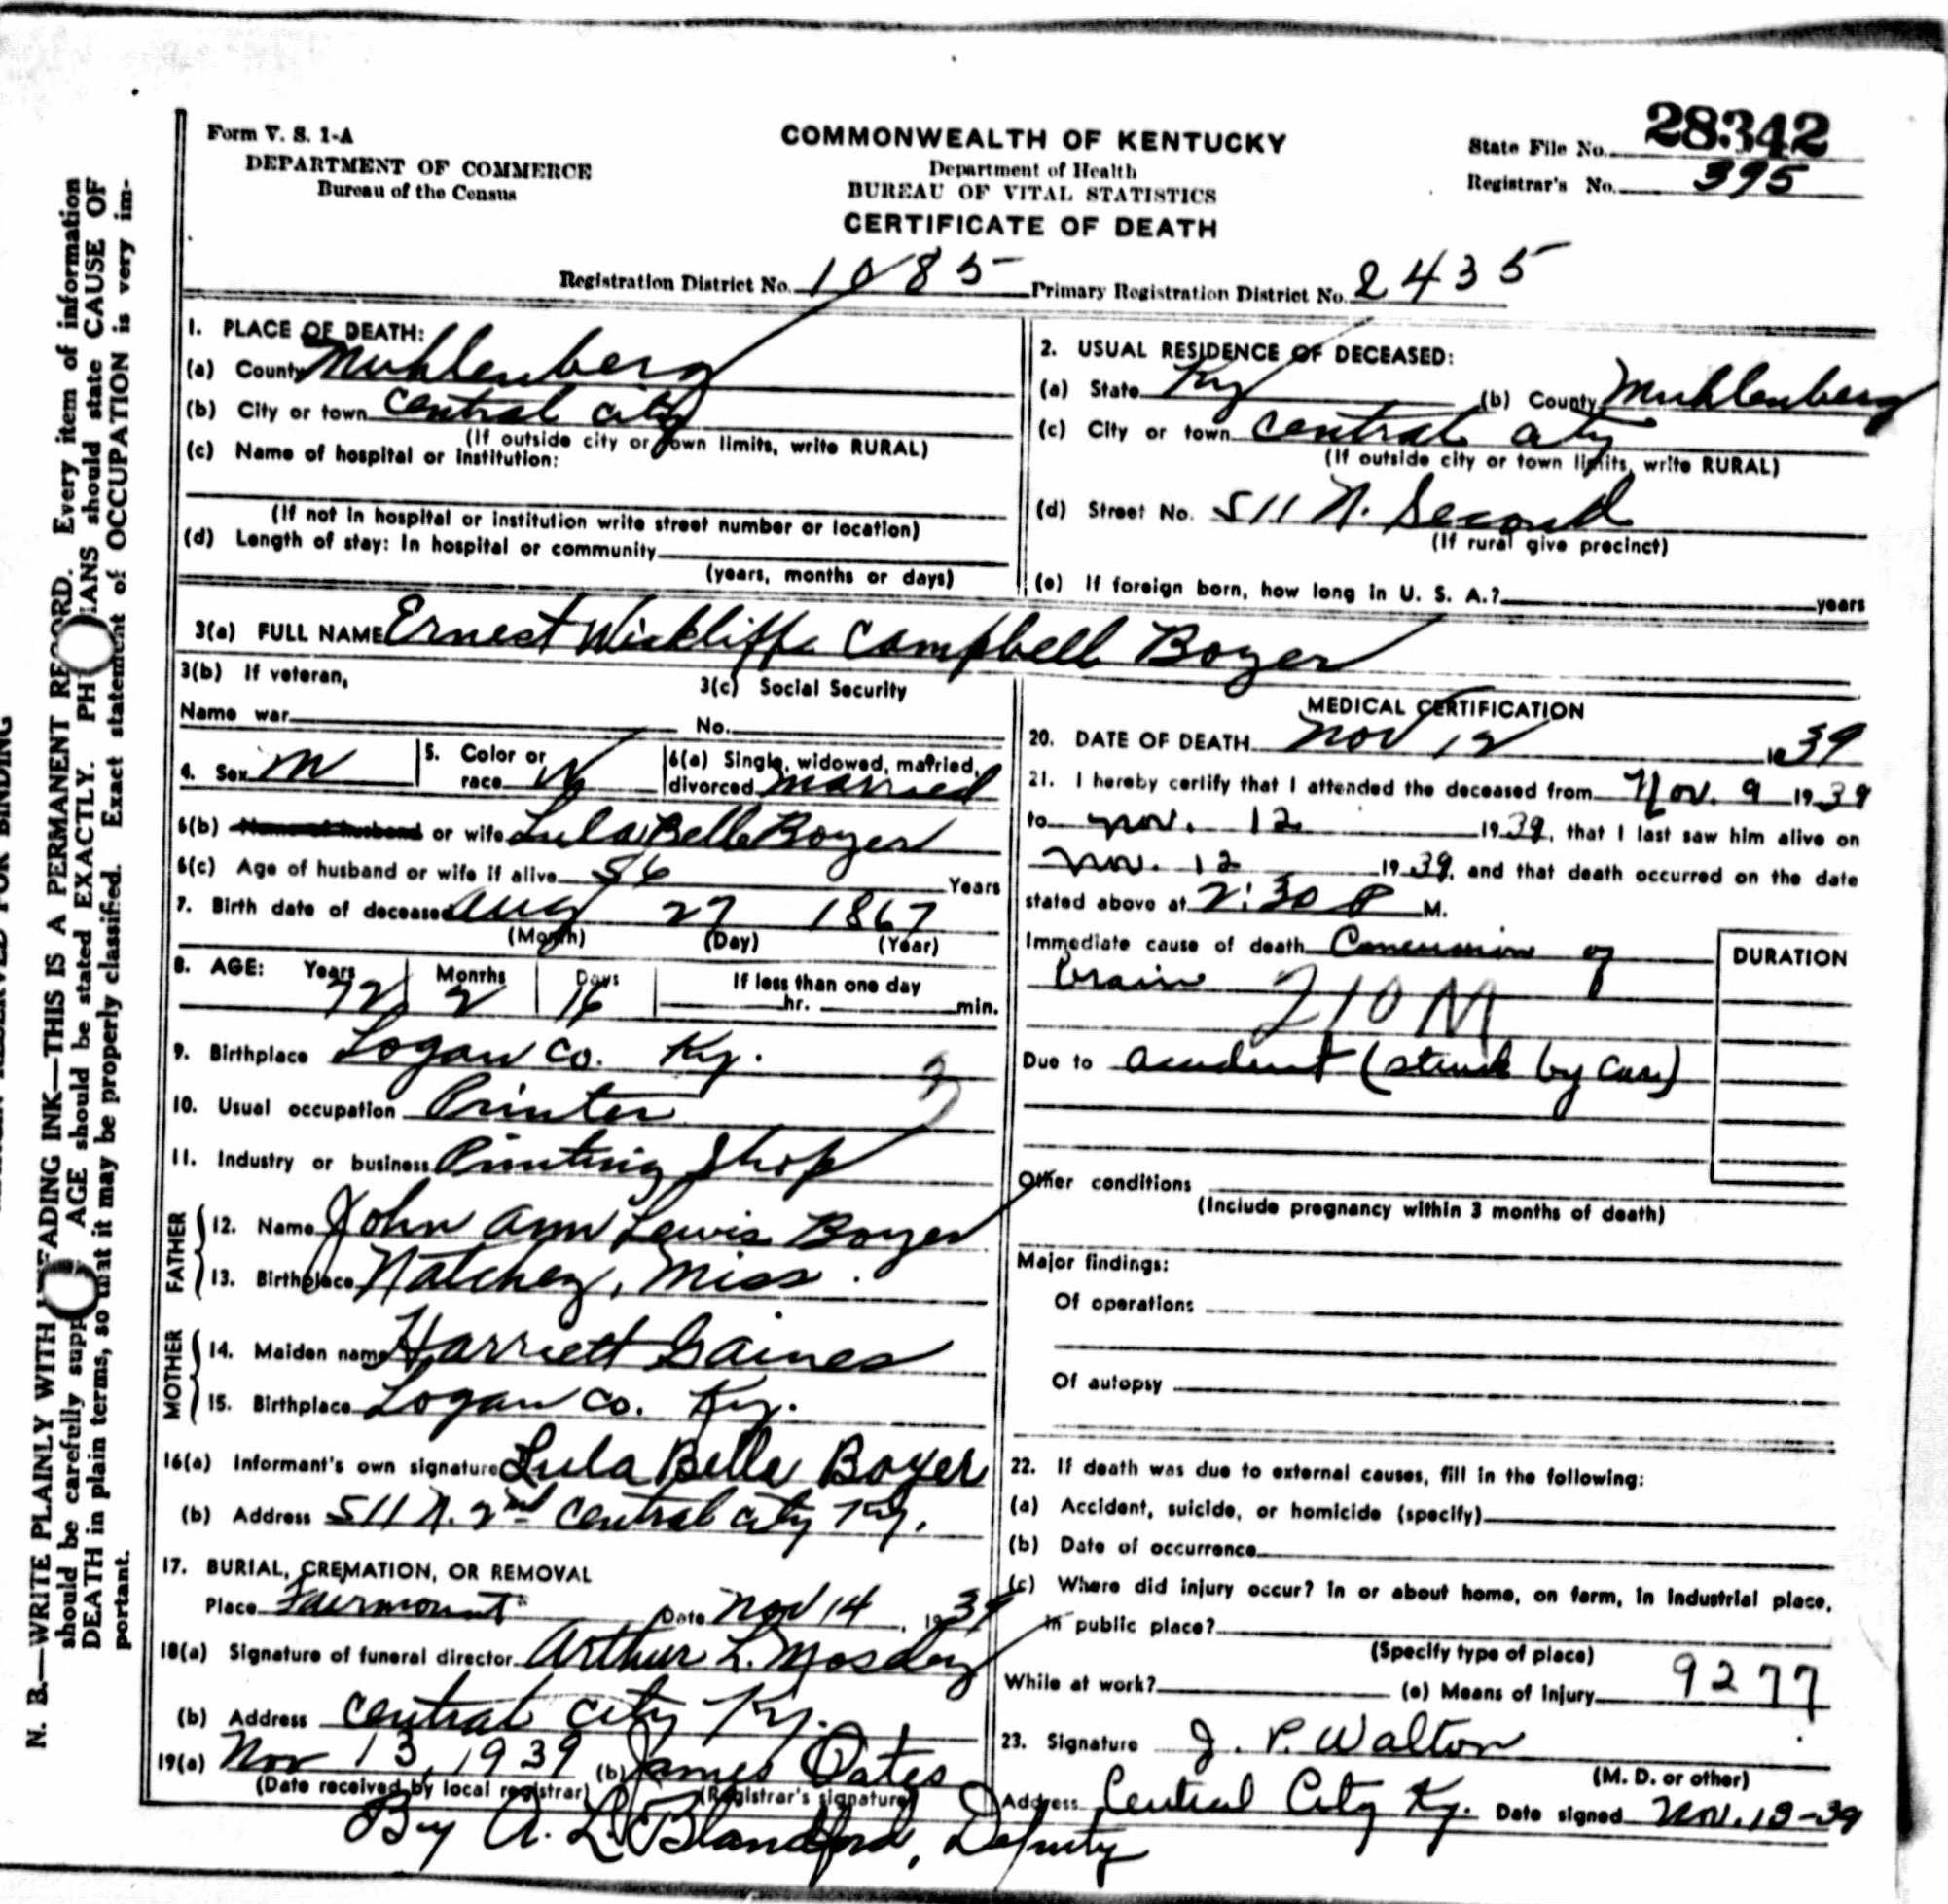 Death certificates b kentucky death certificate 28342 xflitez Images